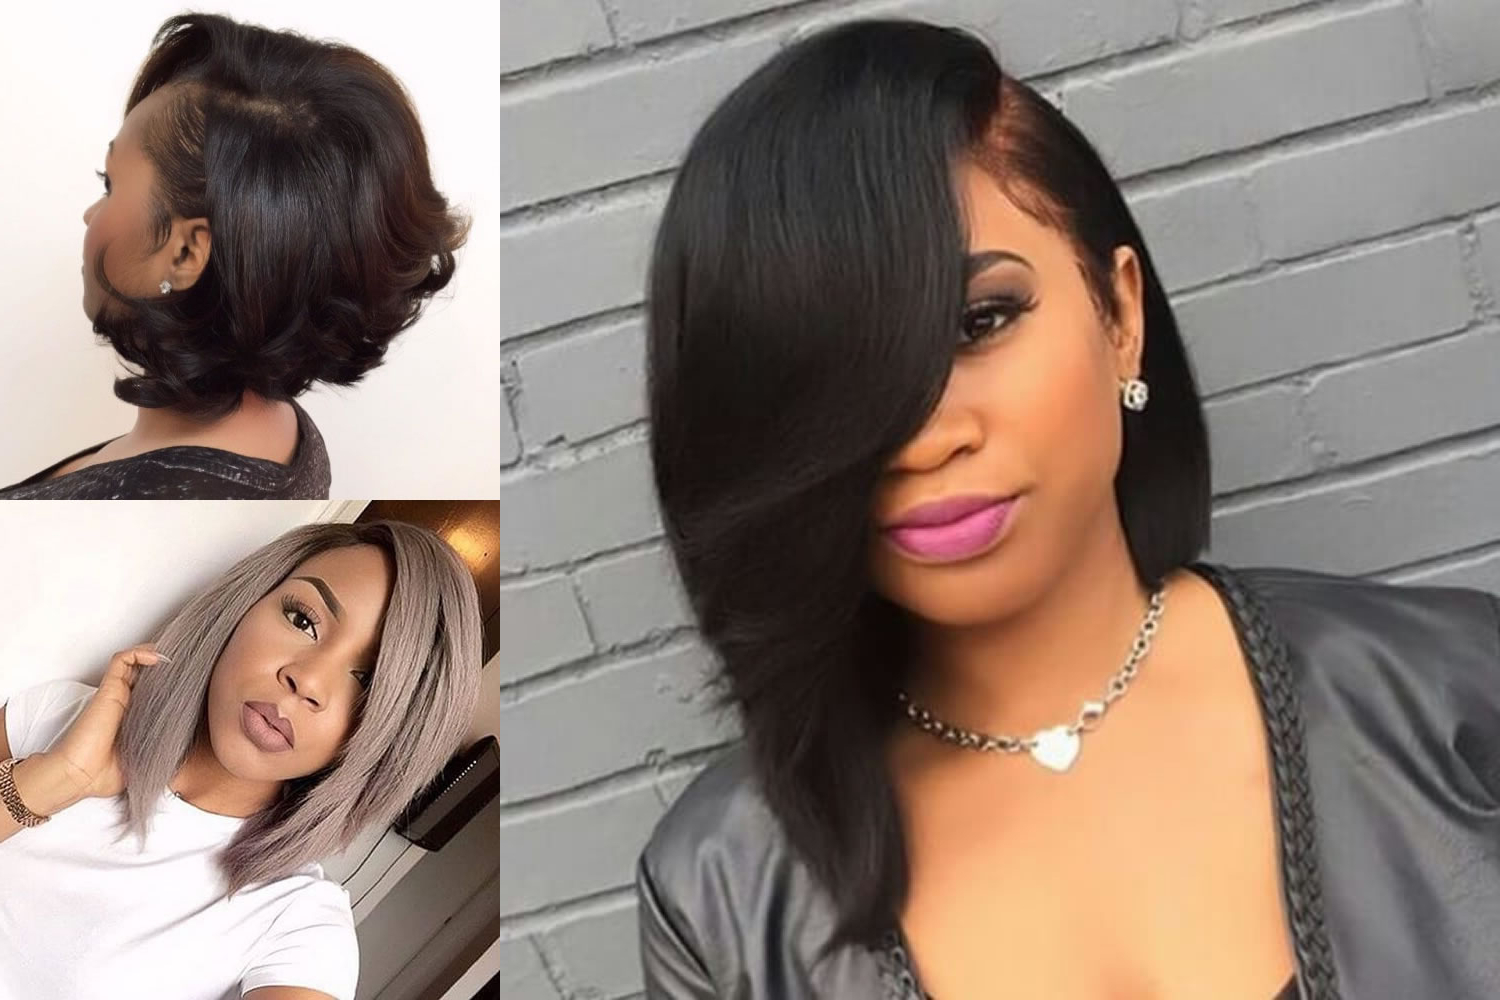 Best 45 Short Bob Hairstyle For Black Women & Hair Color Ideas Pertaining To Bob Short Hairstyles For Black Women (View 4 of 25)